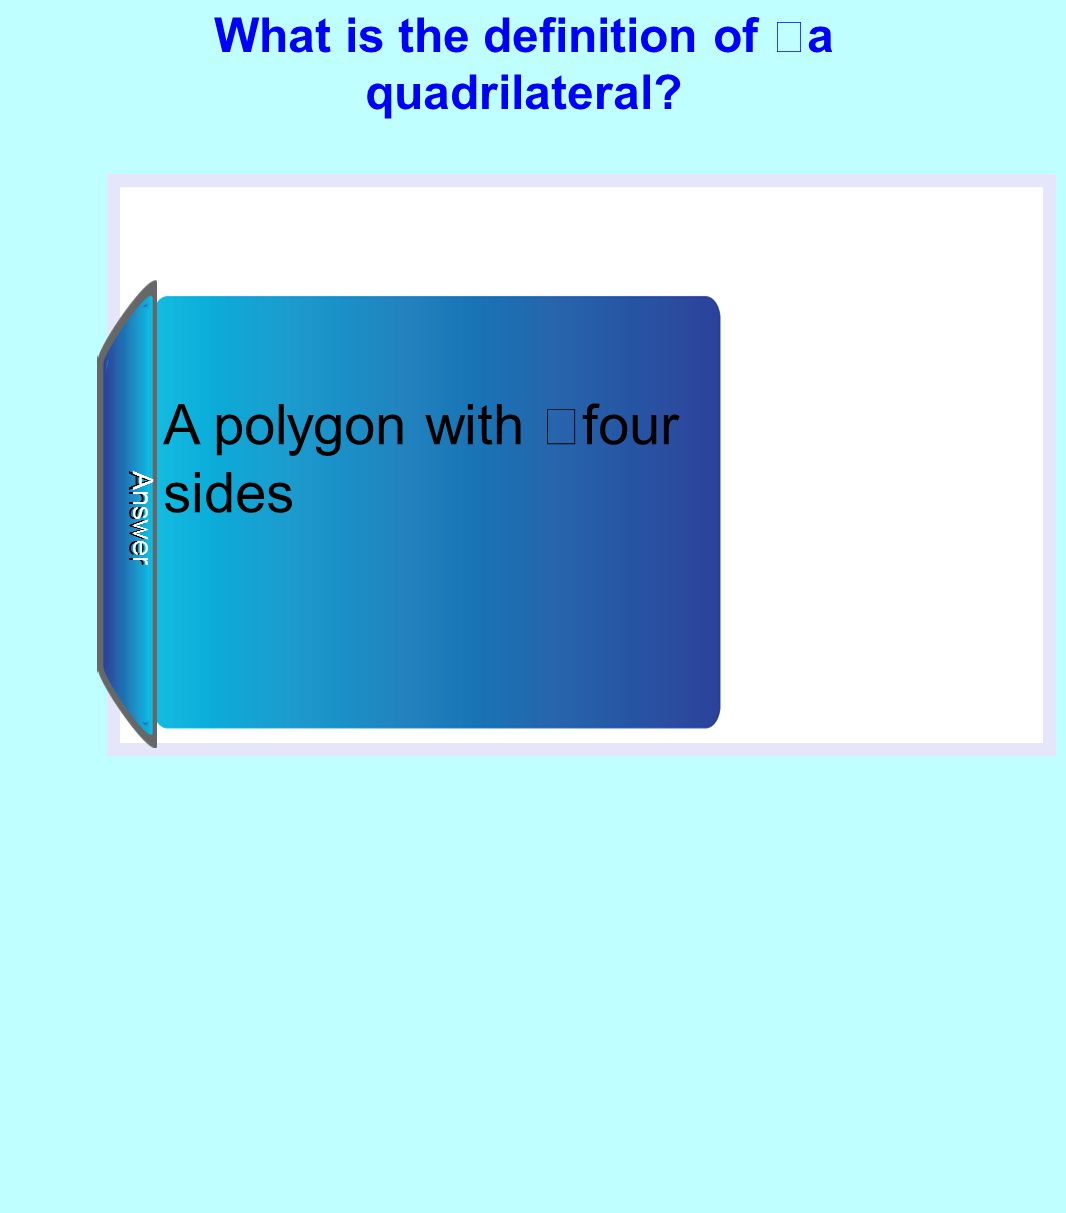 What is the definition of a quadrilateral